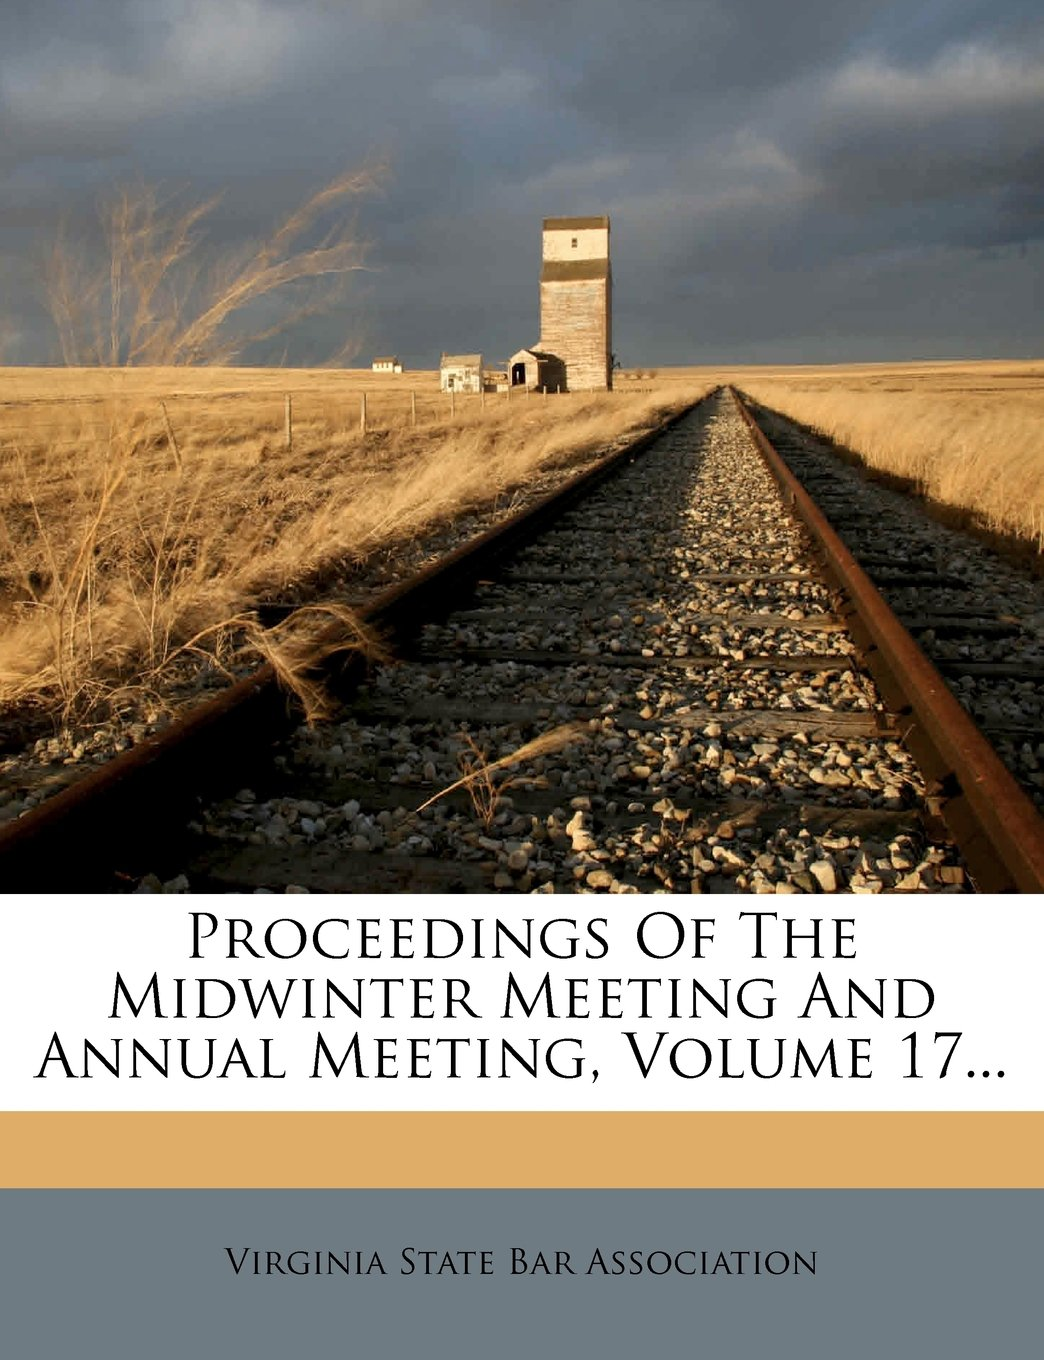 Proceedings Of The Midwinter Meeting And Annual Meeting, Volume 17... ebook